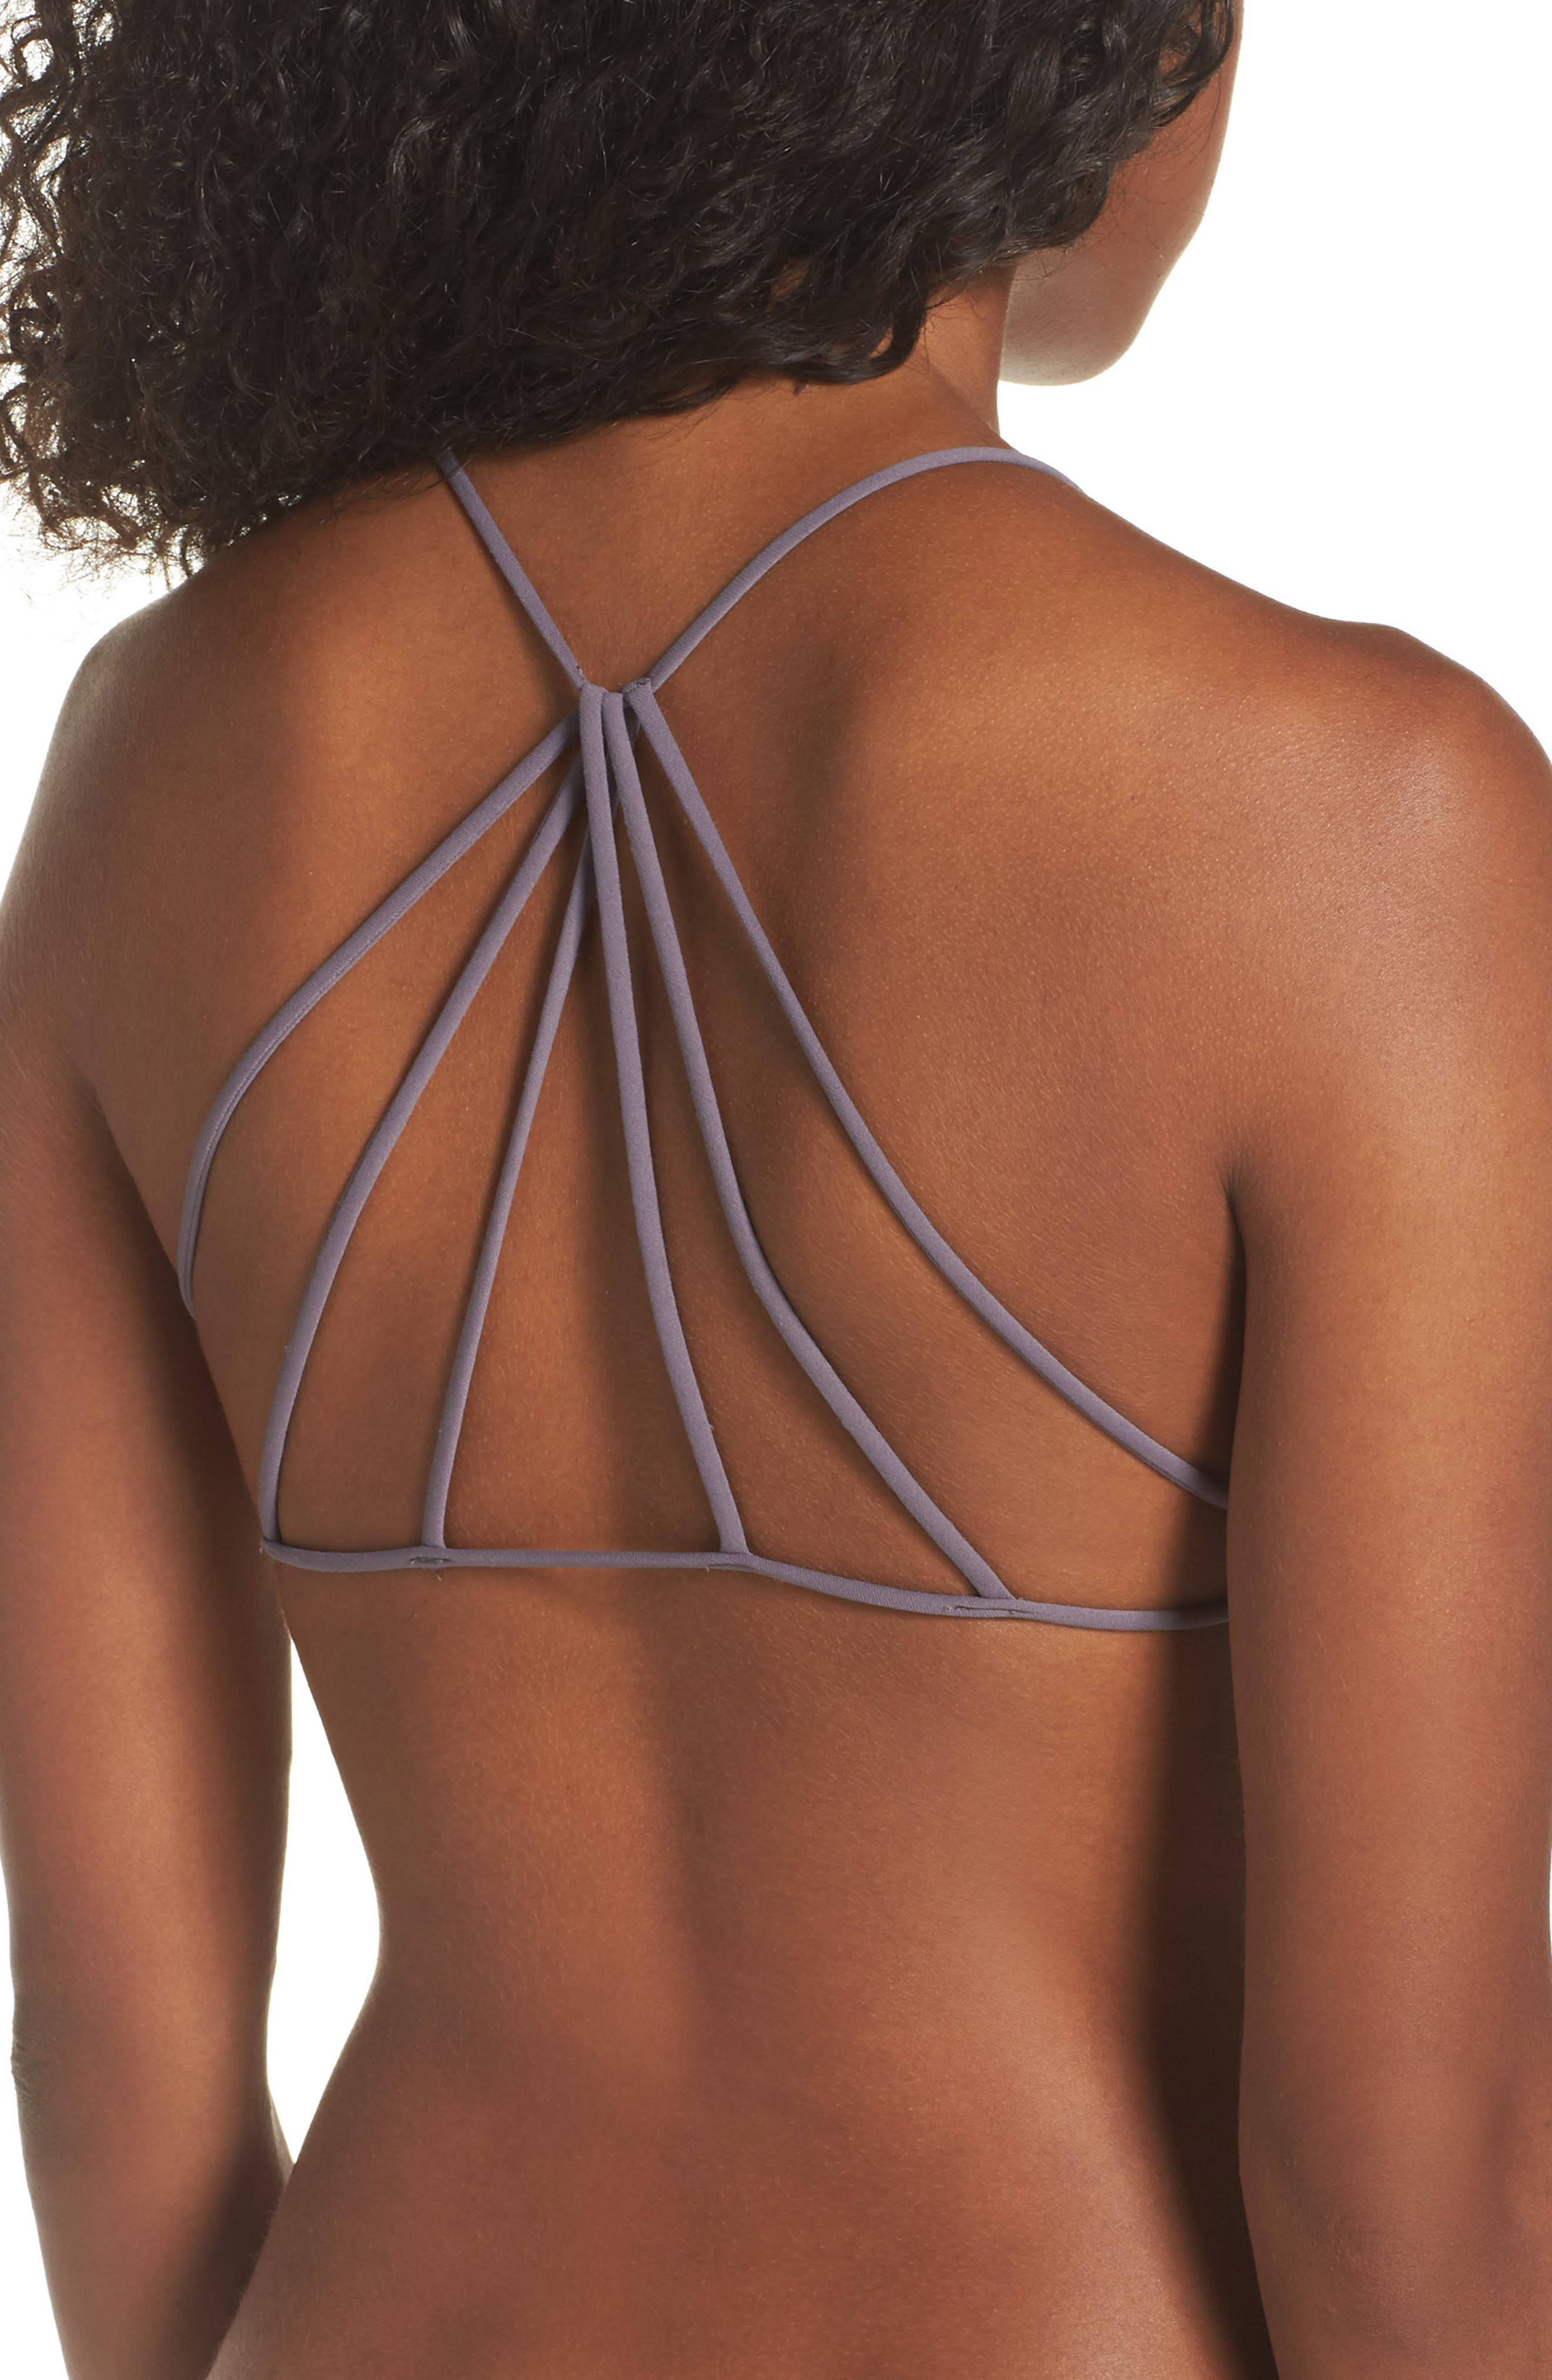 FREE PEOPLE, Intimately FP Seamless Strappy Back Bralette, Alternate thumbnail 2, color, 020